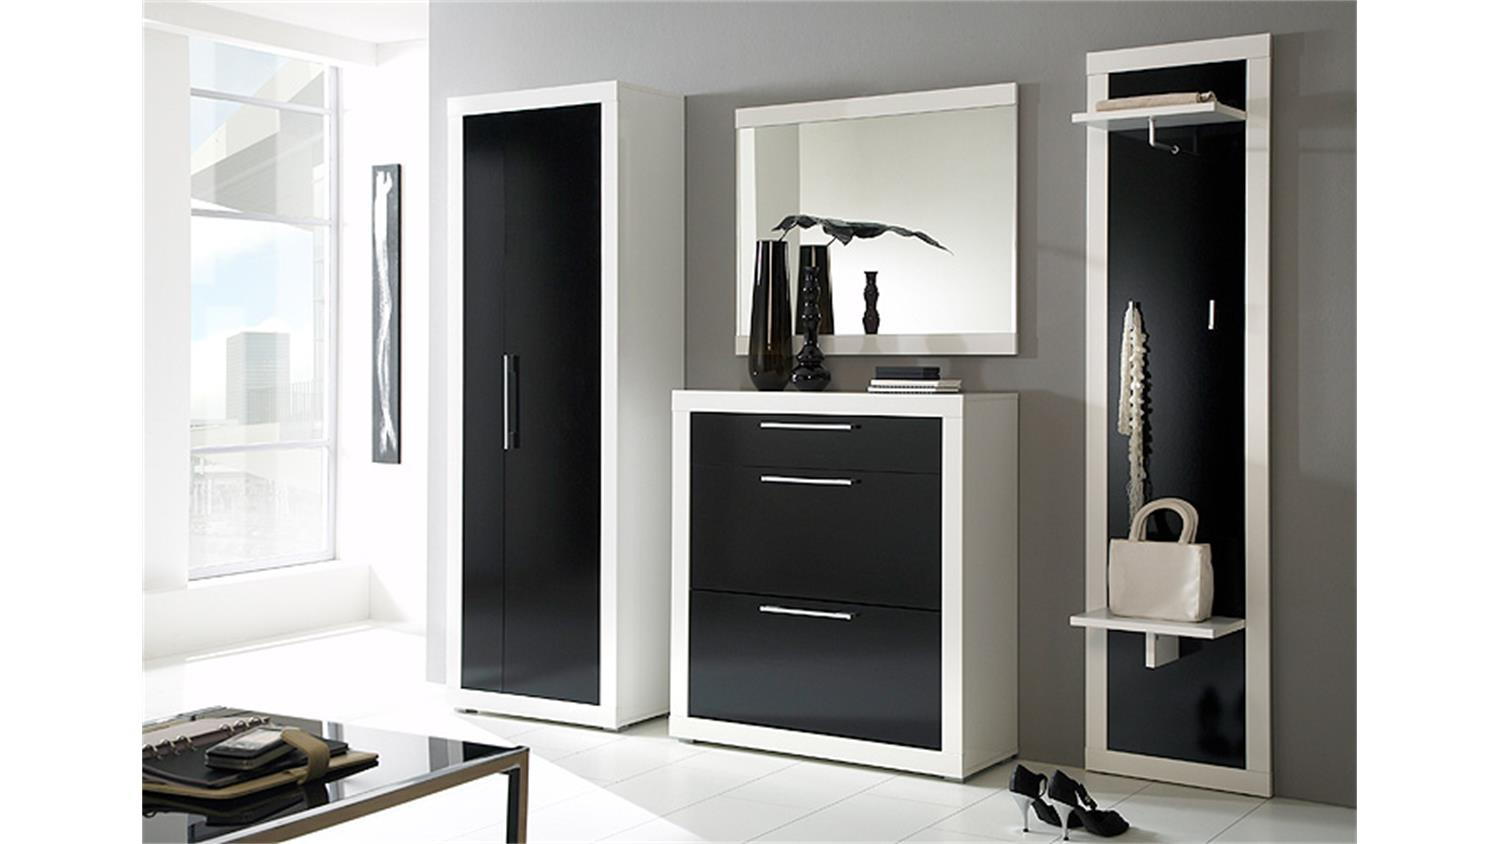 schuhschrank beco wei und sonoma eiche s gerau. Black Bedroom Furniture Sets. Home Design Ideas